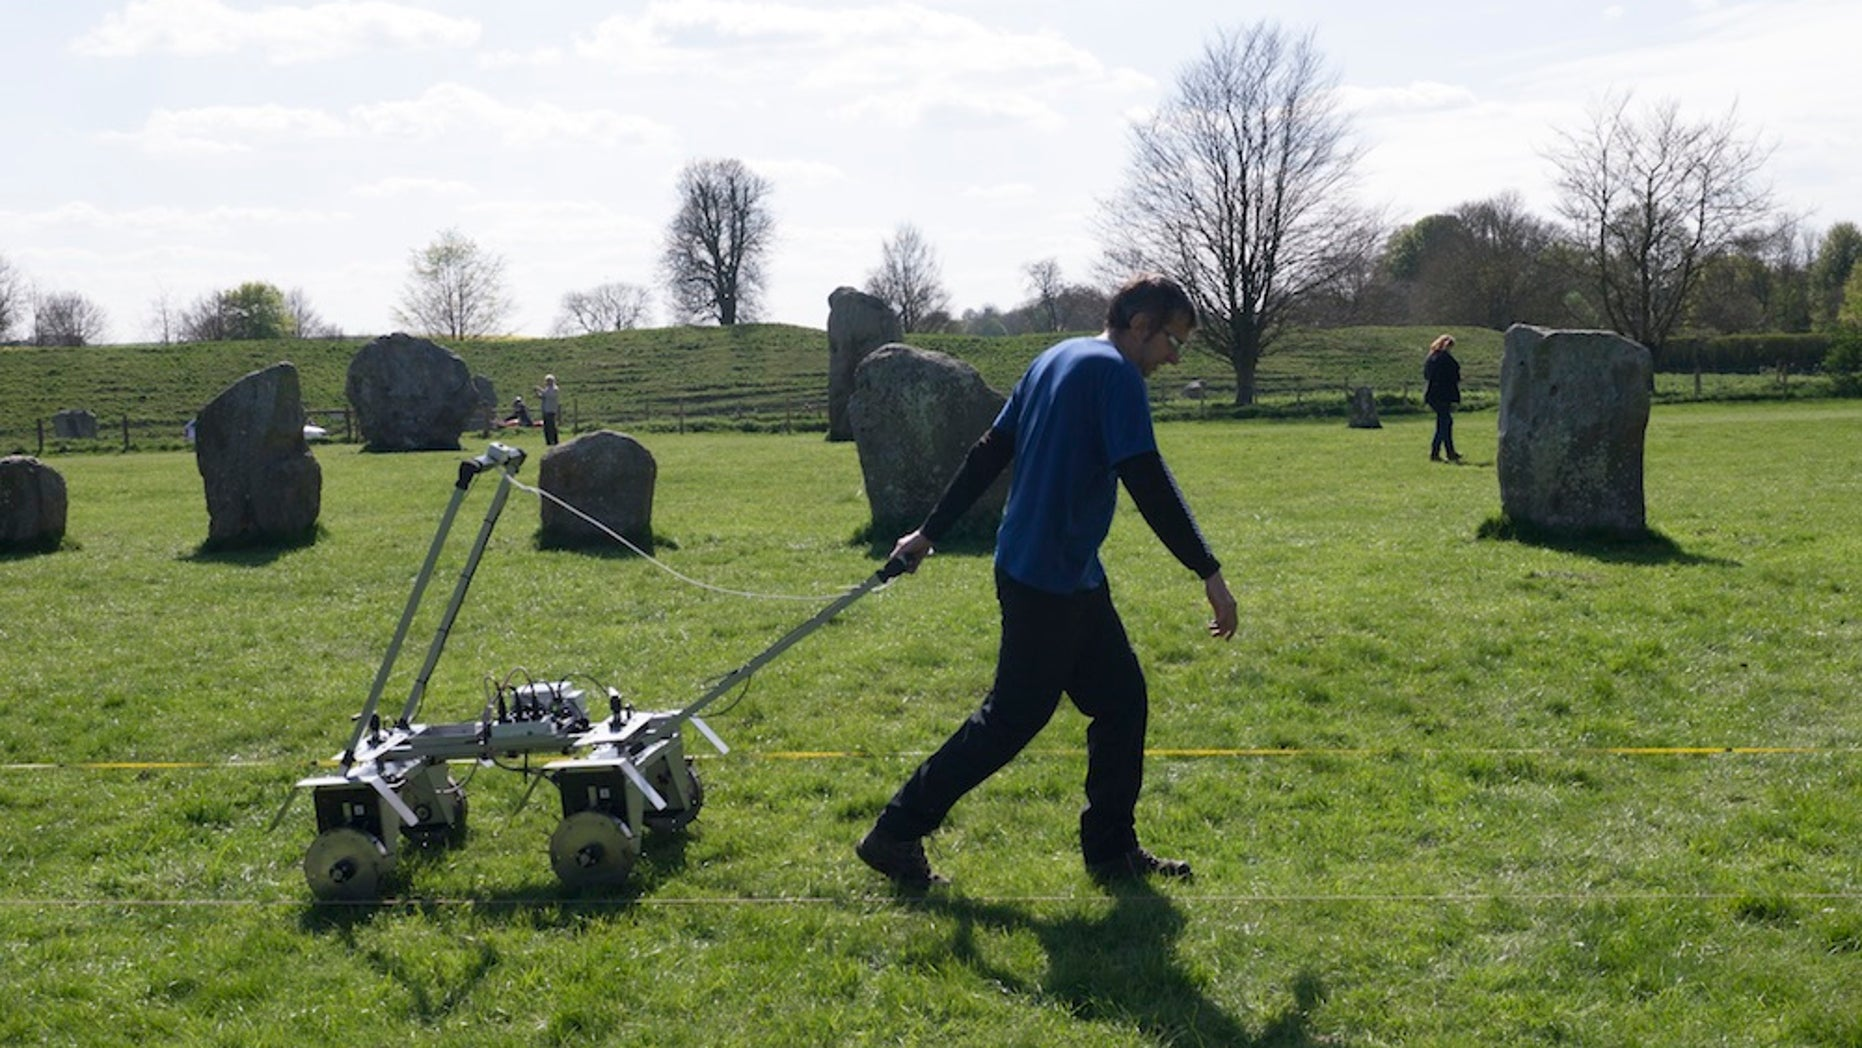 Jeremy Taylor conducts a survey of soil resistance around Avebury Circle. The new data has revealed that hidden beneath the world's largest prehistoric stone circle lies a buried square stone monument, whose purpose is shrouded in mystery.